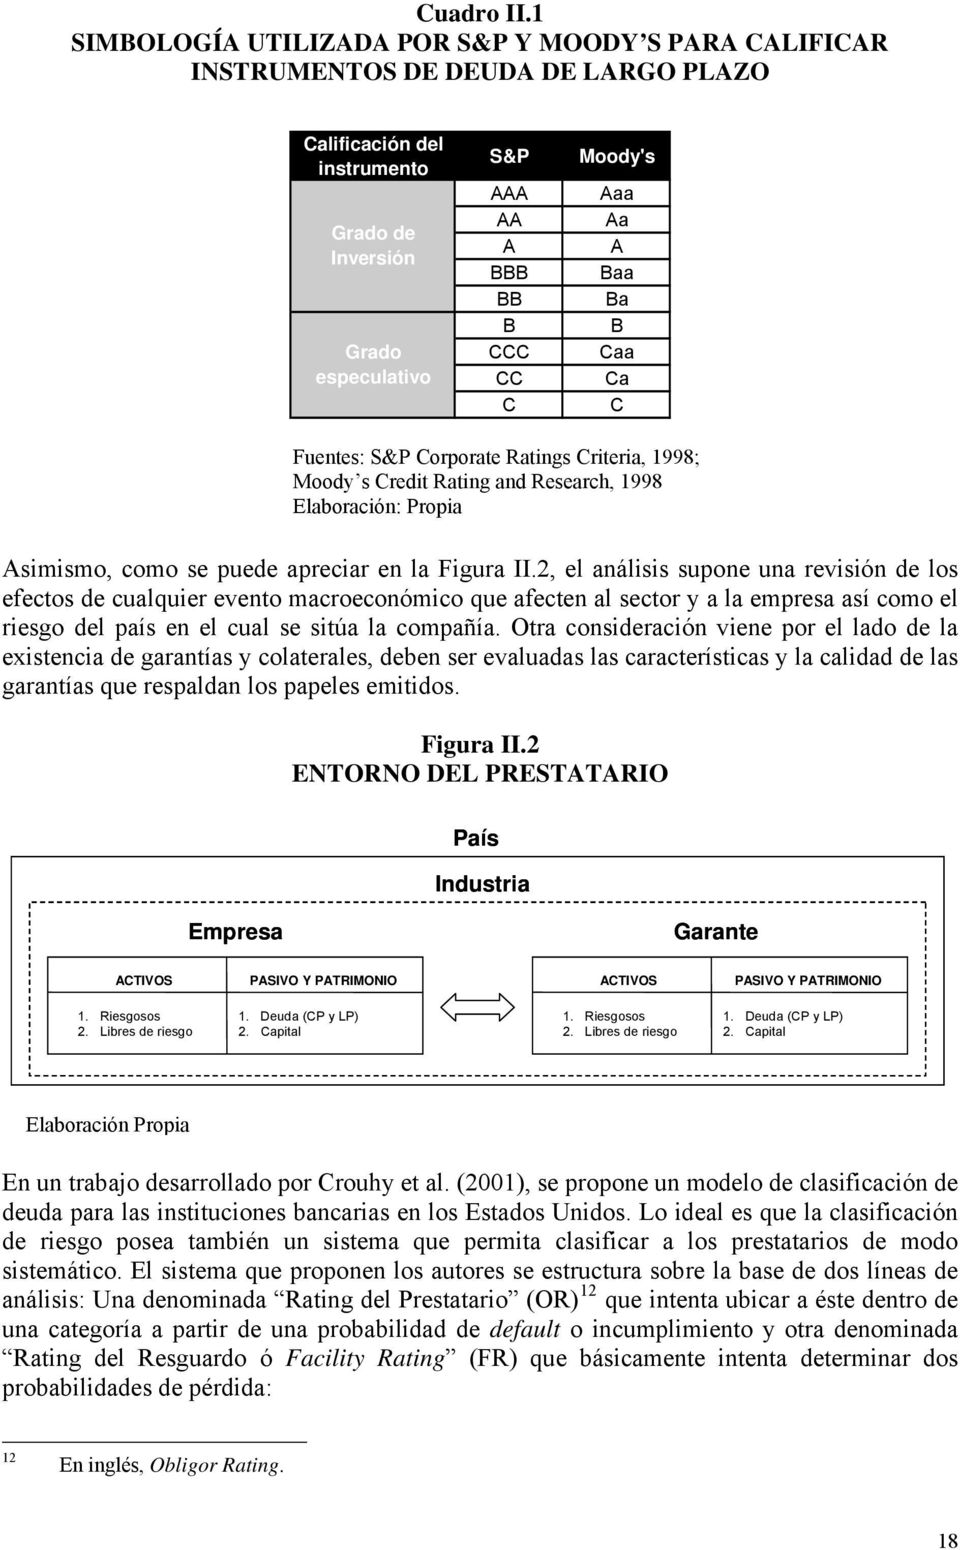 Aaa Aa A Baa Ba B Caa Ca C Fuentes: S&P Corporate Ratings Criteria, 1998; Moody s Credit Rating and Research, 1998 Elaboración: Propia Asimismo, como se puede apreciar en la Figura II.